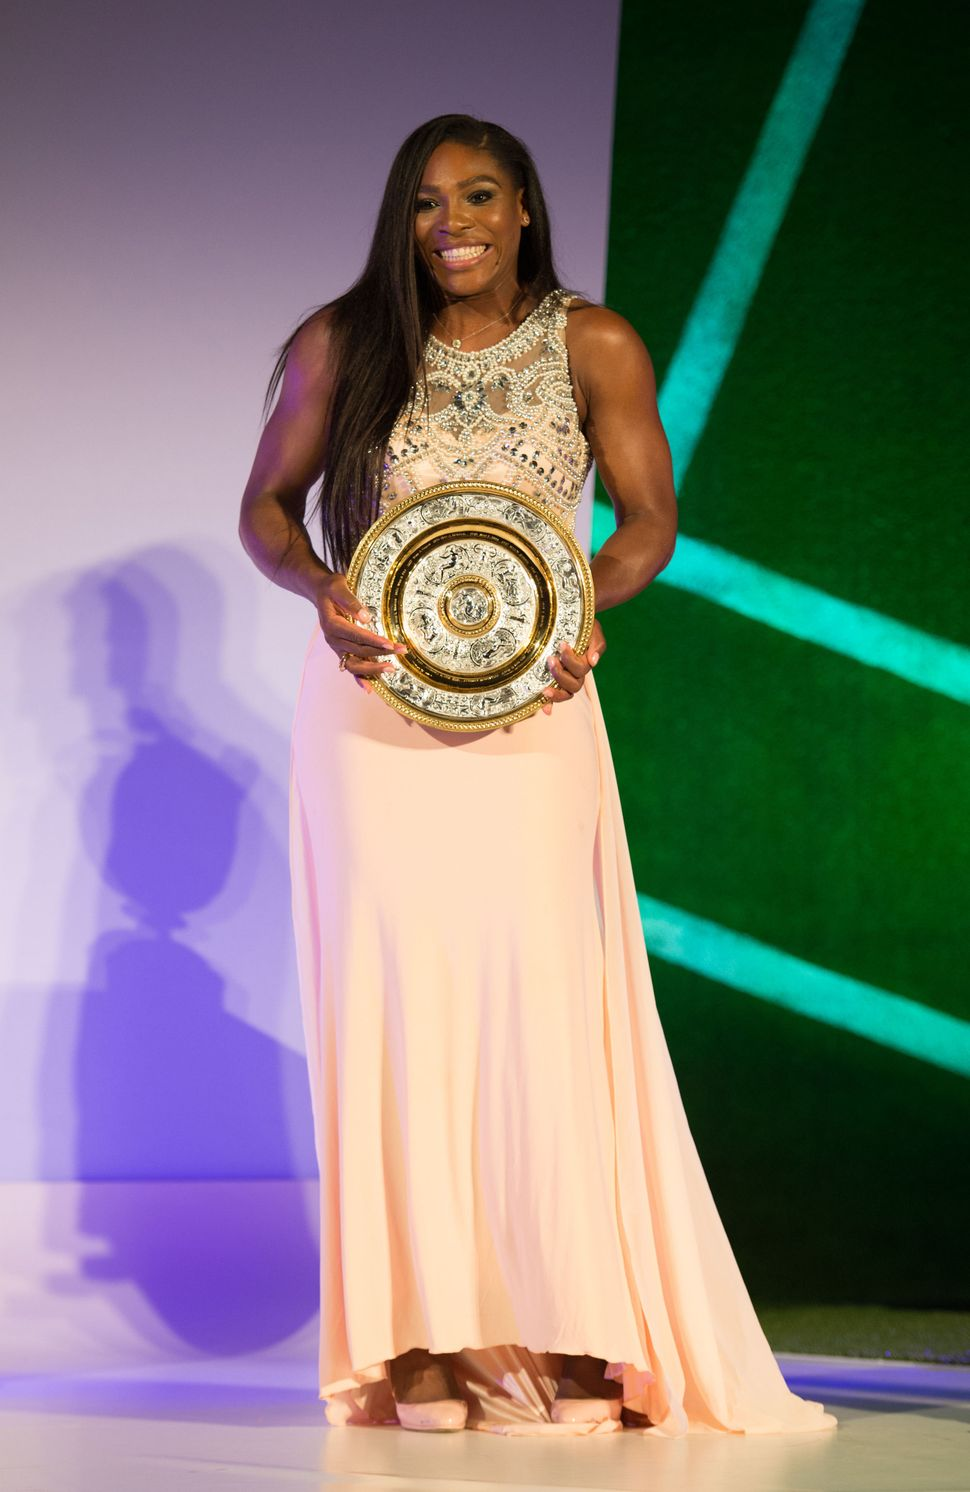 LONDON, ENGLAND - JULY 12:  (EDITORIAL USE ONLY - NO COMMERCIAL USEAGE)  Serena Williams of the United States poses on stage